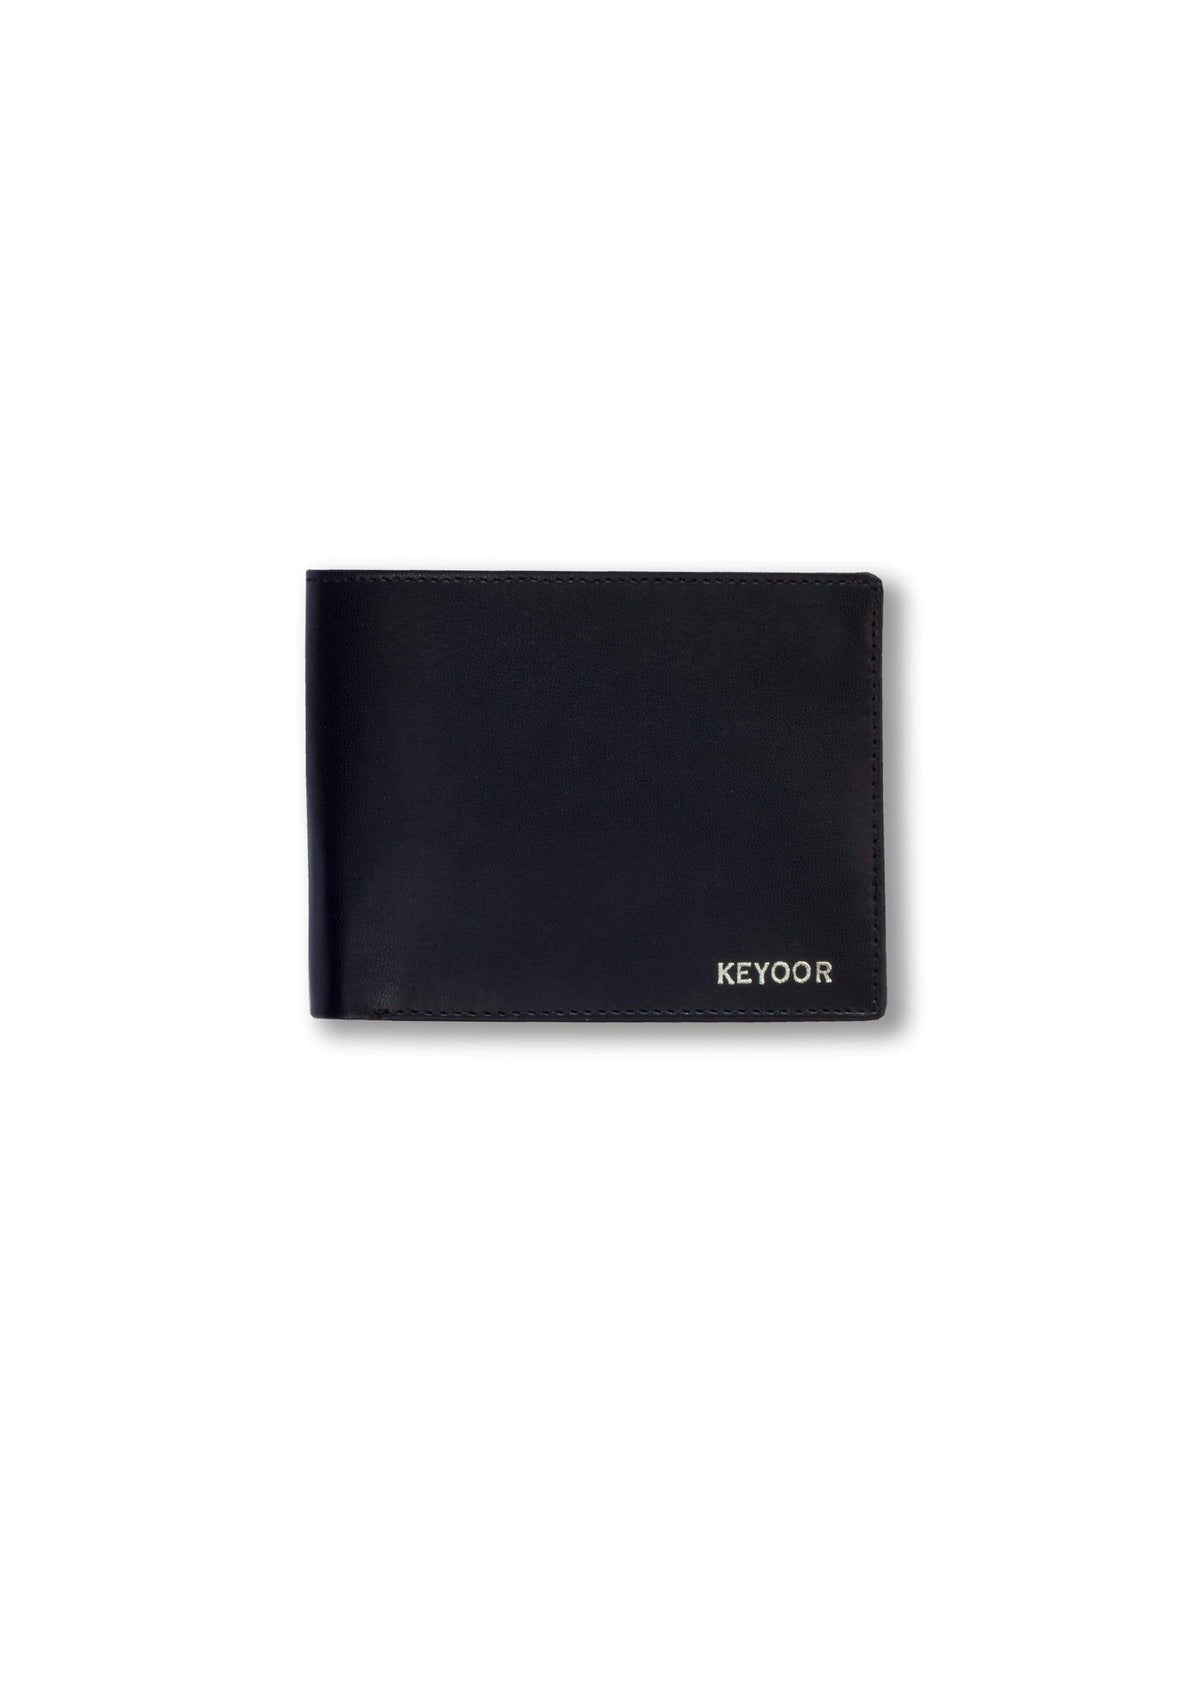 Personalized Men's Wallet - Black Mens Wallet